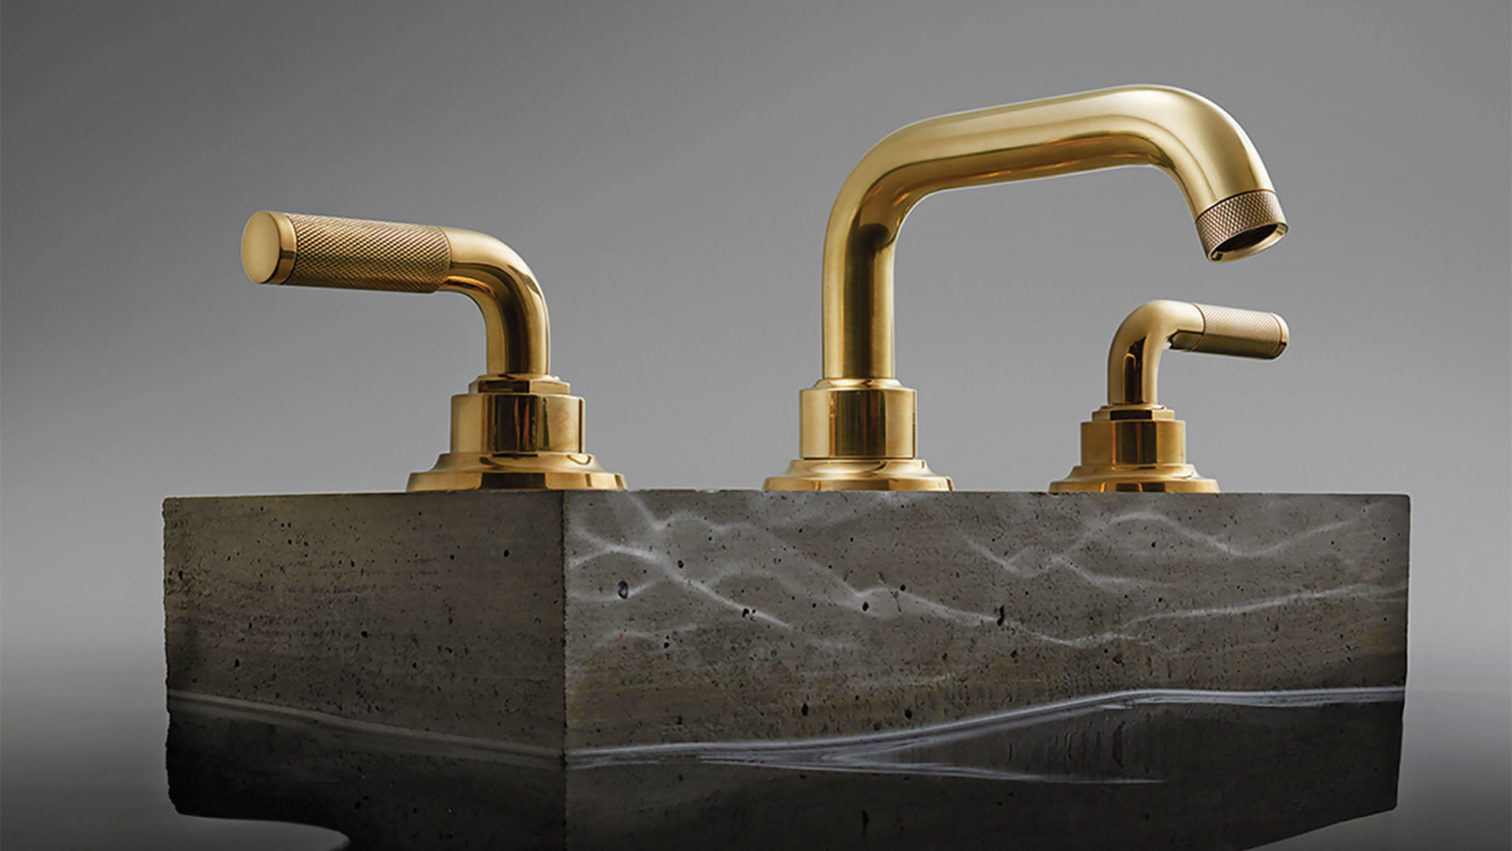 Descanso Widespread faucet in satin brass